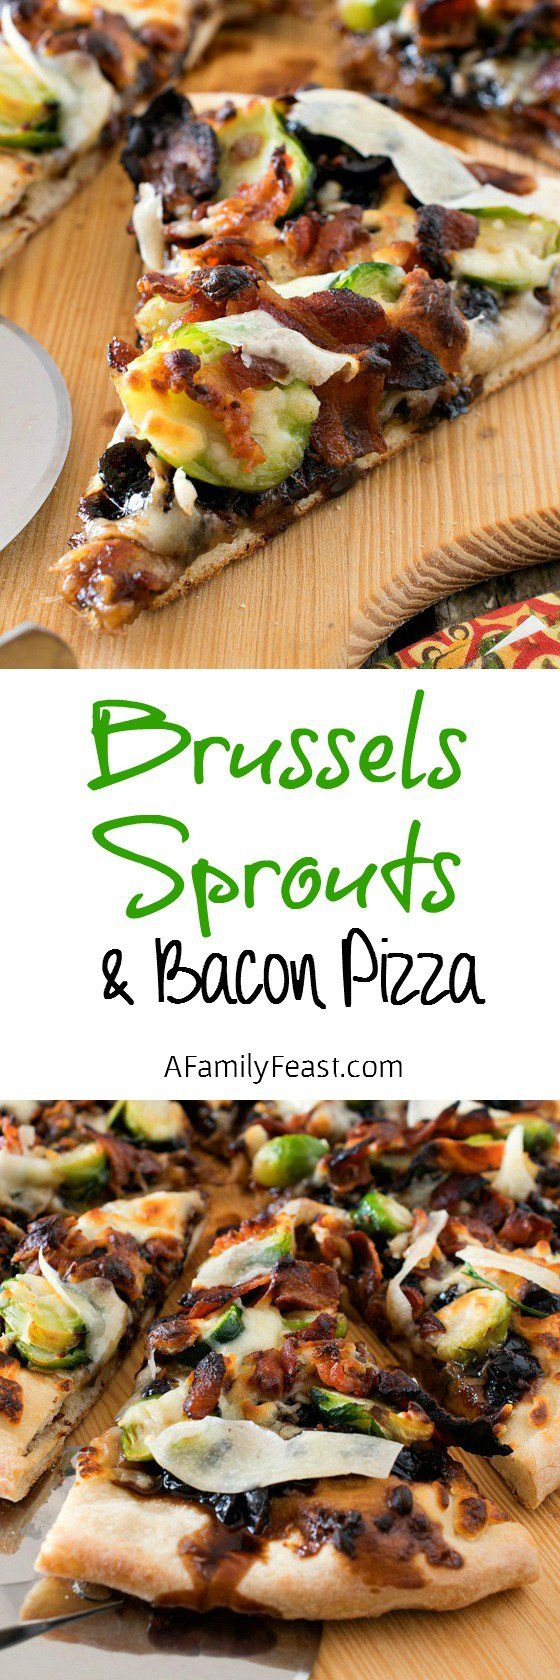 Brussels Sprouts and Bacon Pizza - Such a fantastic flavor combination for a pizza!